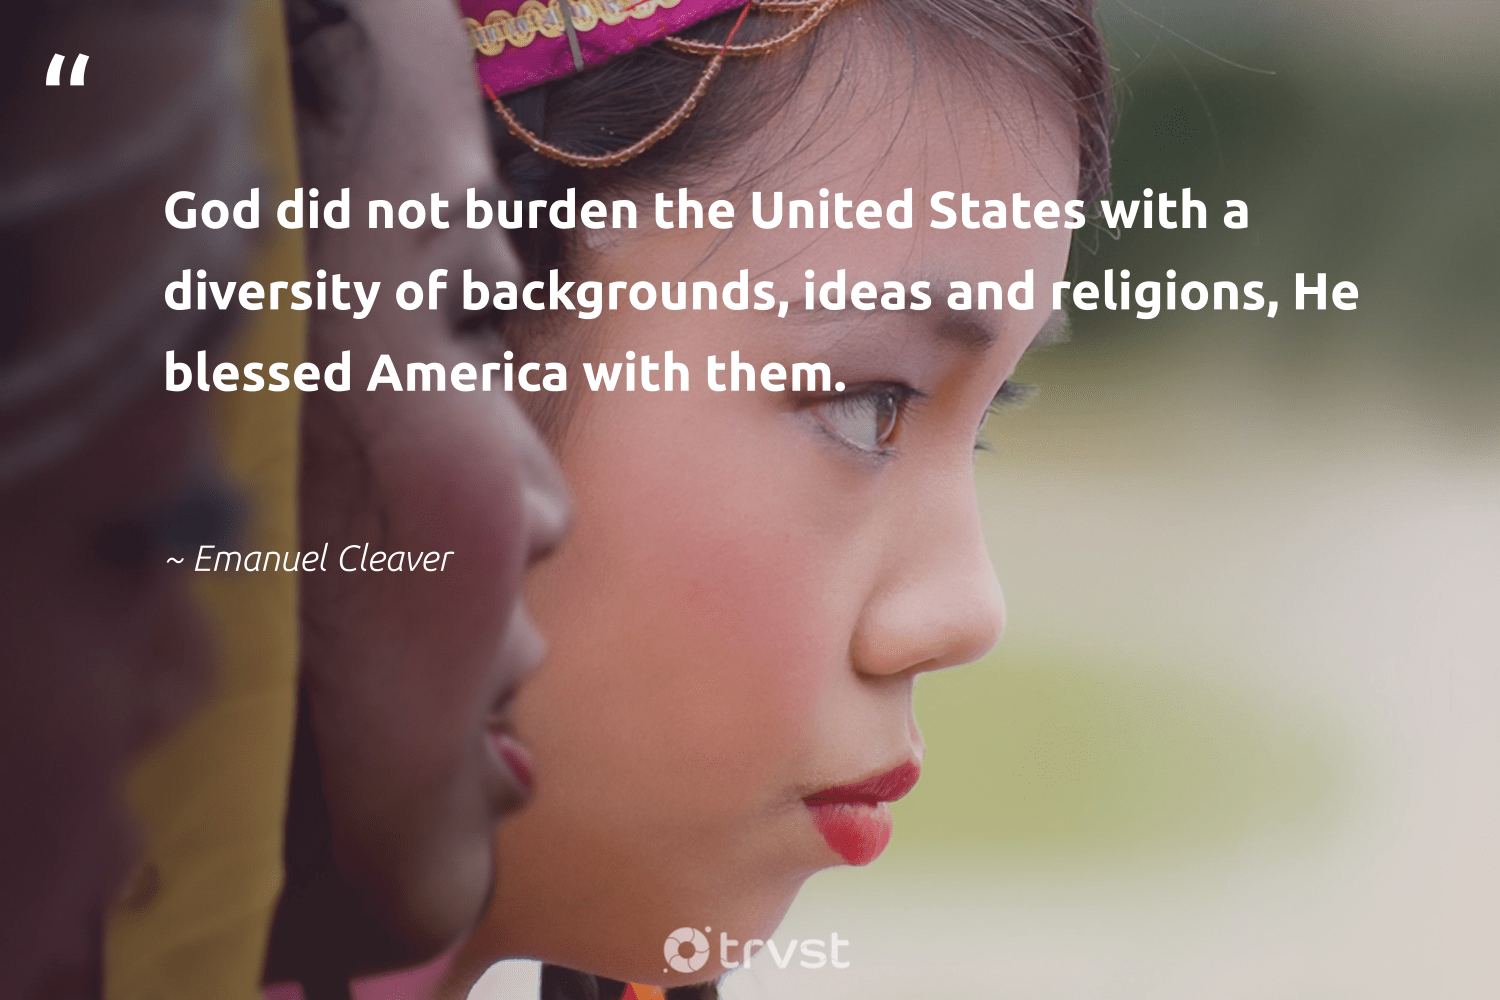 """God did not burden the United States with a diversity of backgrounds, ideas and religions, He blessed America with them.""  - Emanuel Cleaver #trvst #quotes #diversity #inclusion #discrimination #socialgood #giveback #dotherightthing #representationmatters #bethechange #weareallone #dogood"